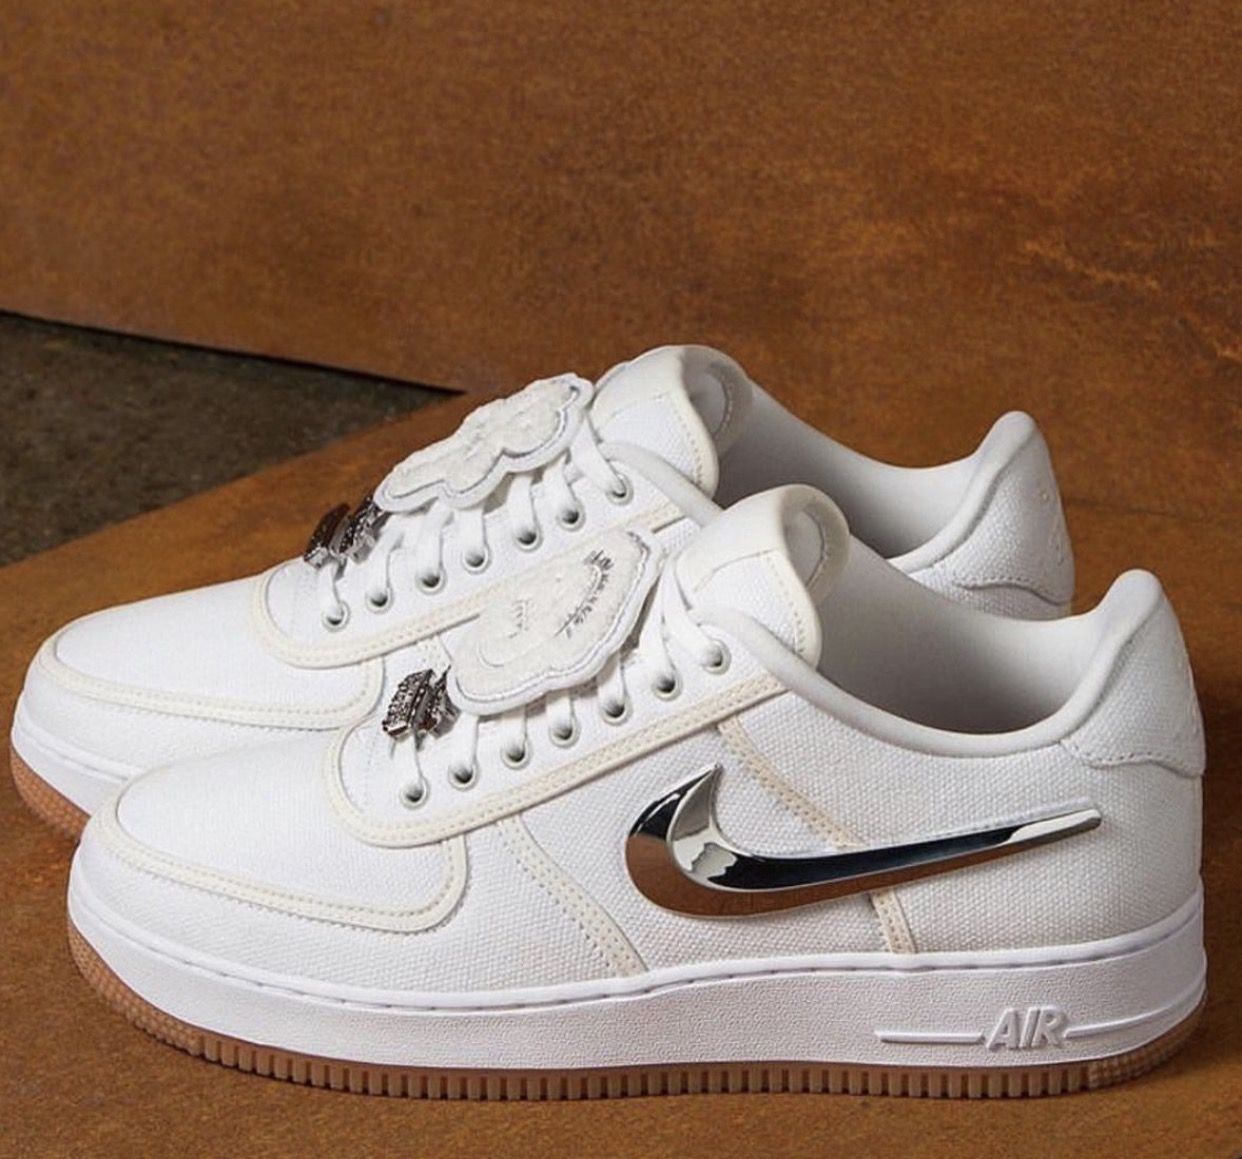 uk availability c9cd9 cf349 AIR FORCE 1 low   TRAVIS SCOTT